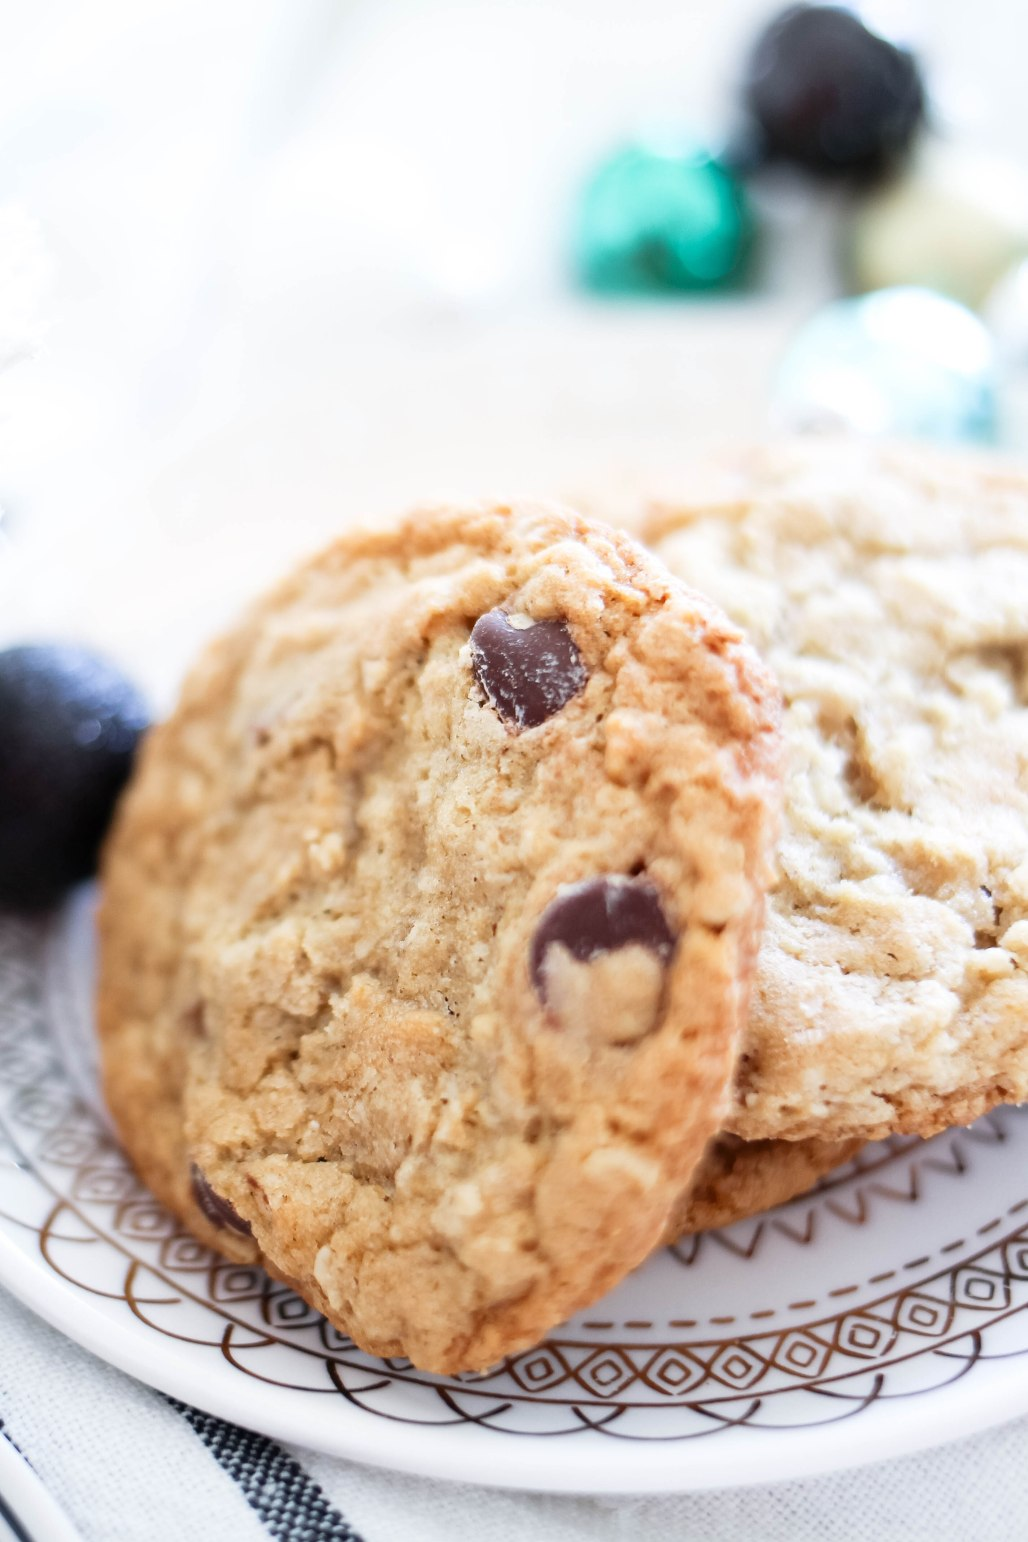 Chocolate Chip Cookie Recipe-A Married Adventure